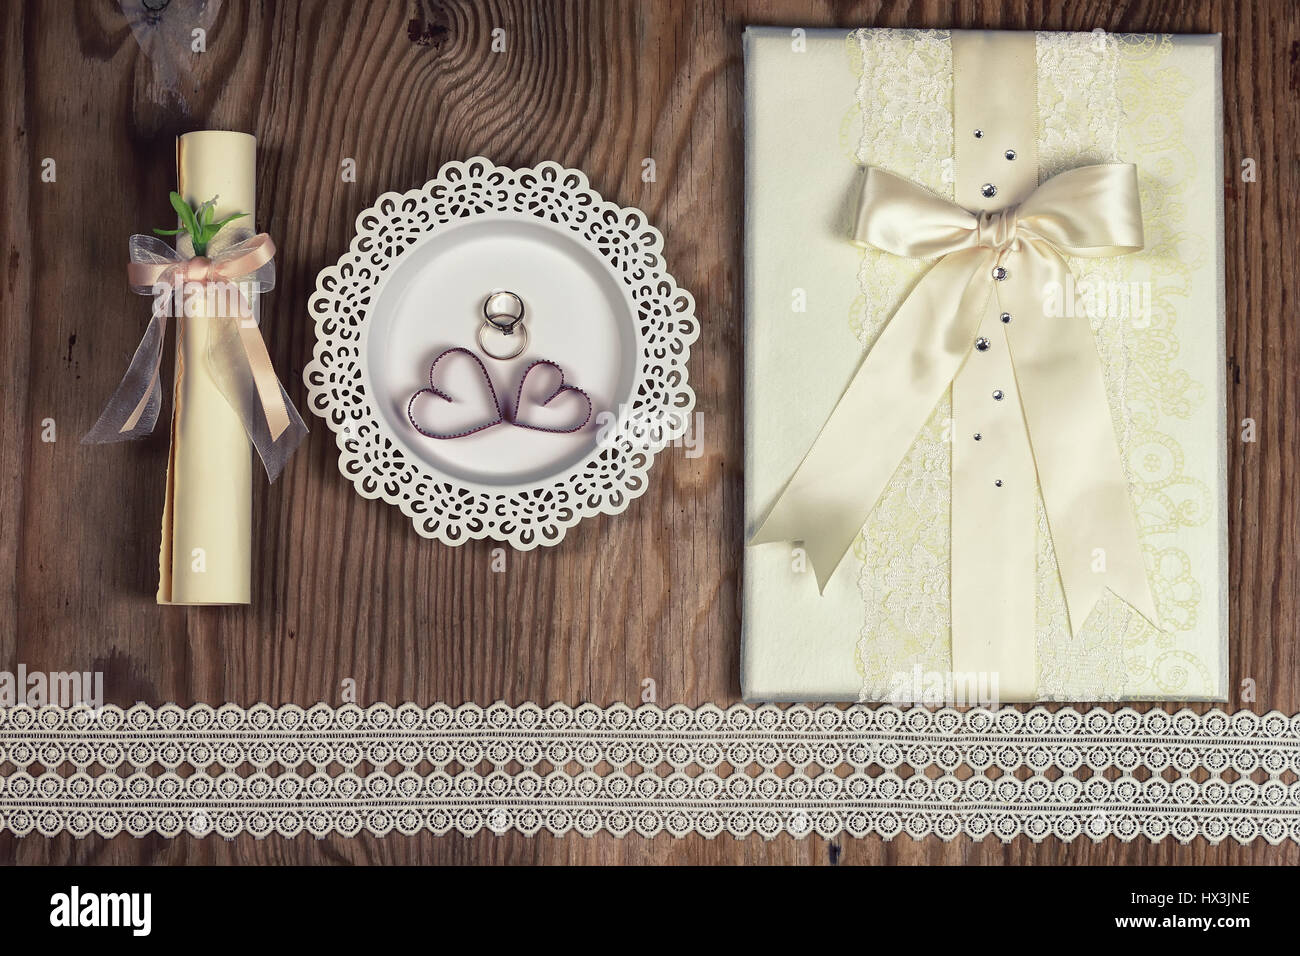 wedding ring invitation wood background - Stock Image